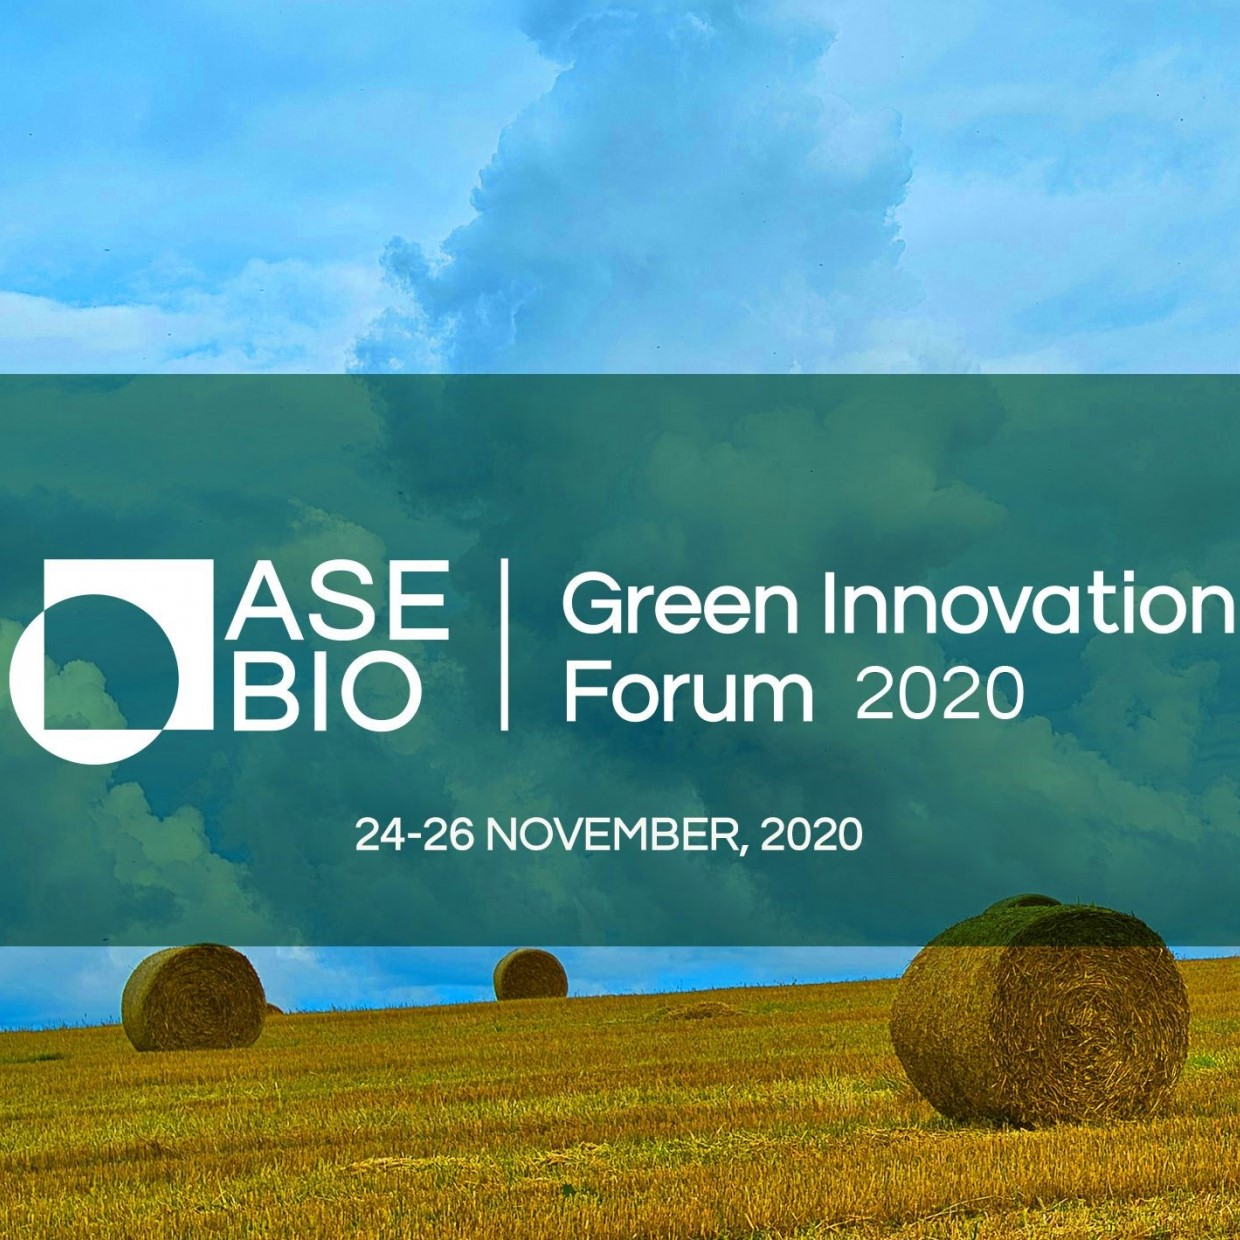 AlgaEnergy, protagonista en el Green Innovation Forum de AseBio